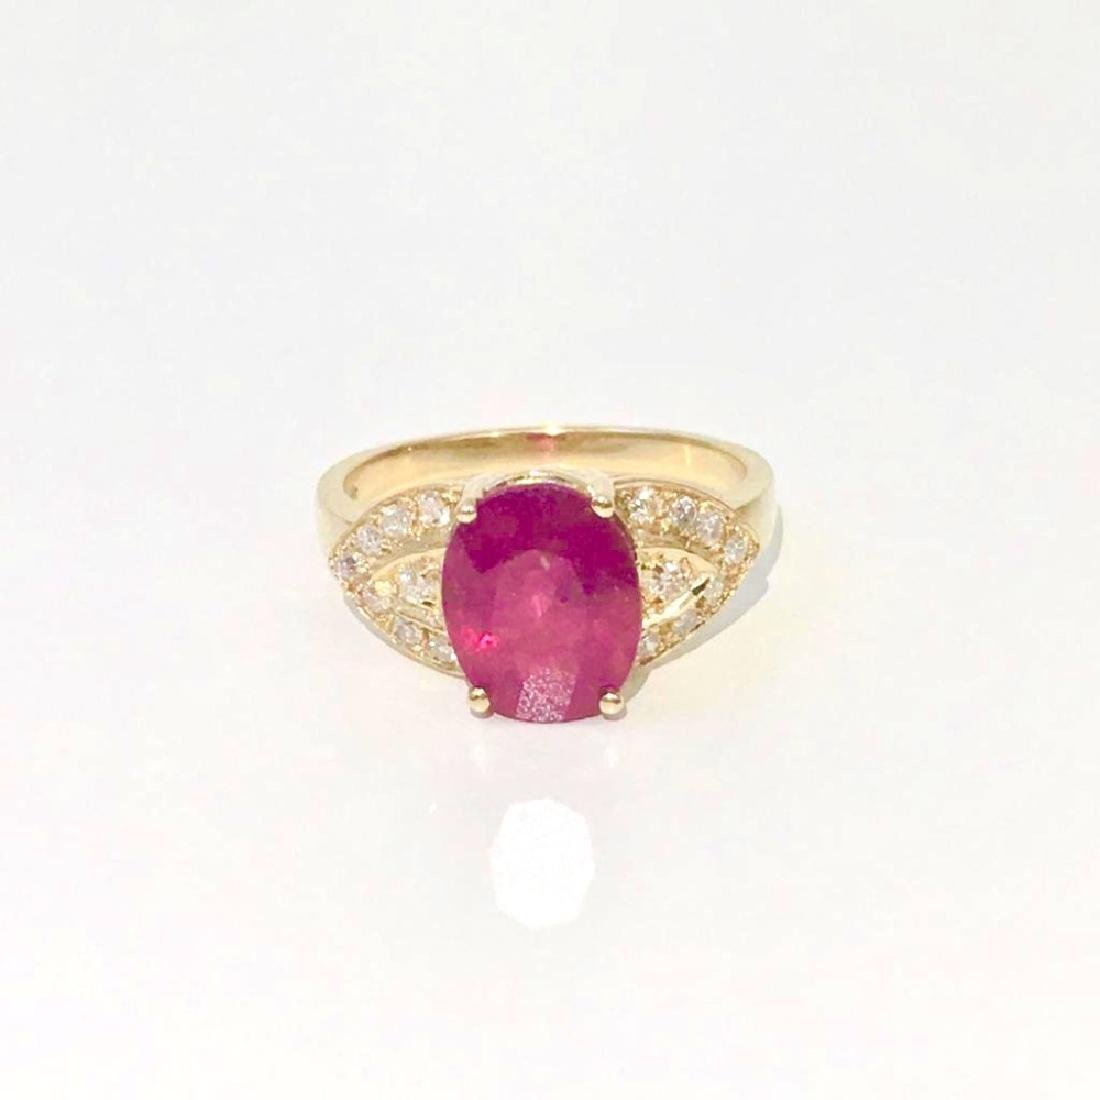 14K Gold, 4.50 CT Ruby and Diamond Ring - 3